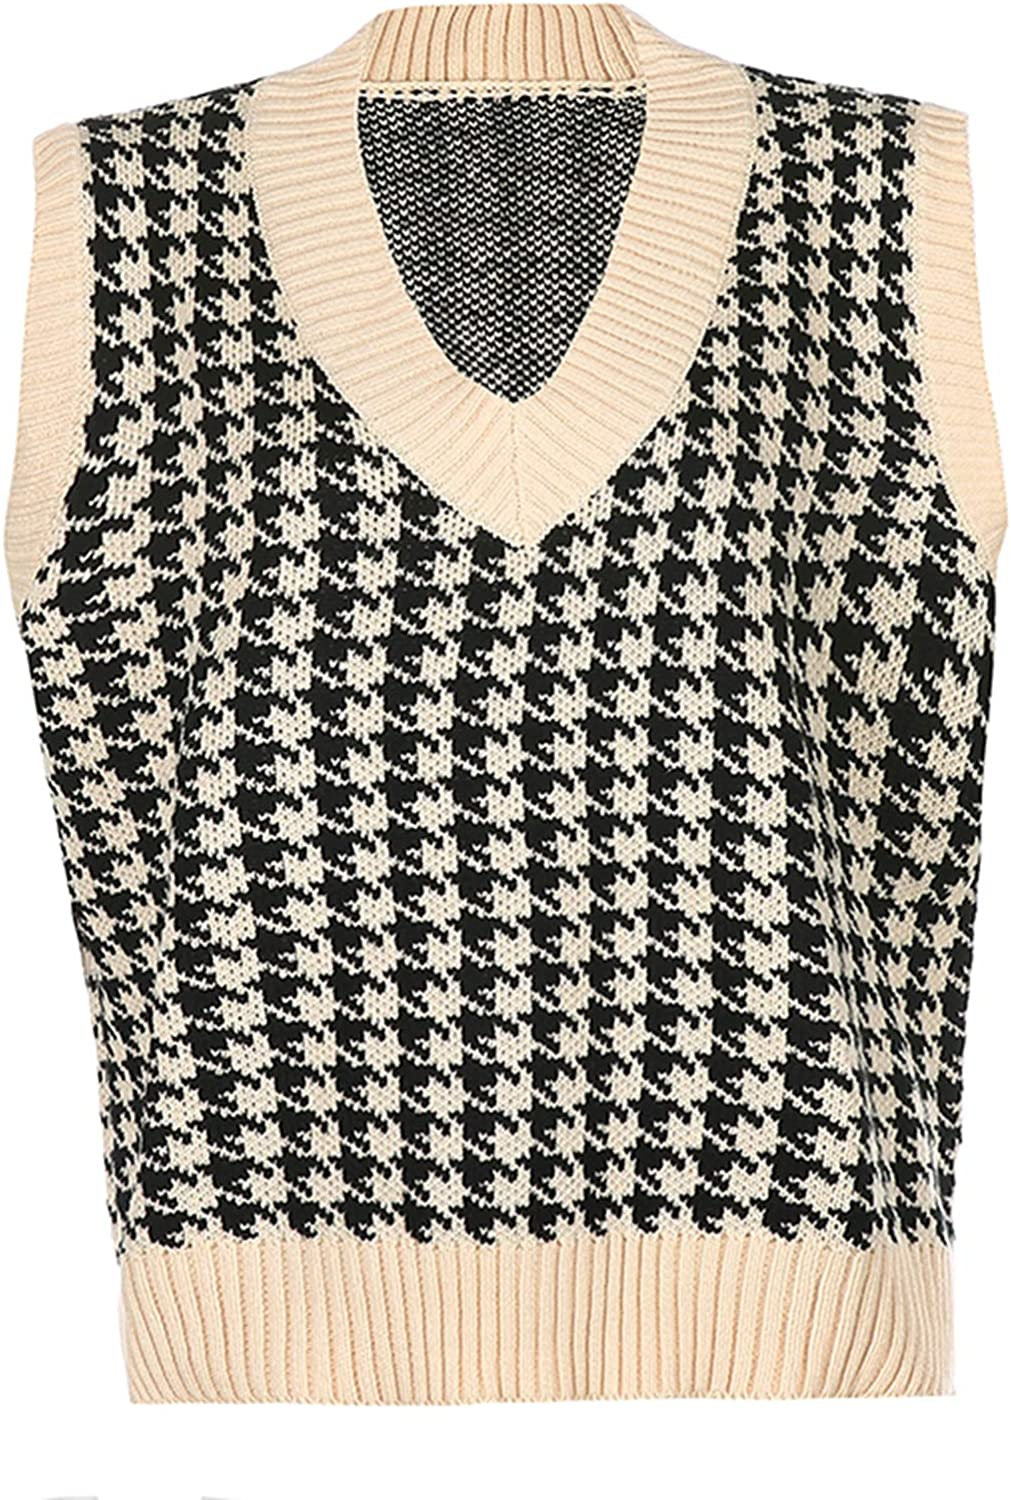 80s Sweatshirts, Sweaters, Vests | Women Women Oversized Houndstooth Sweater Vest Vintage Knitted V Neck Sleeveless Pullover Loose 90s Knitwear Tank Tops  AT vintagedancer.com